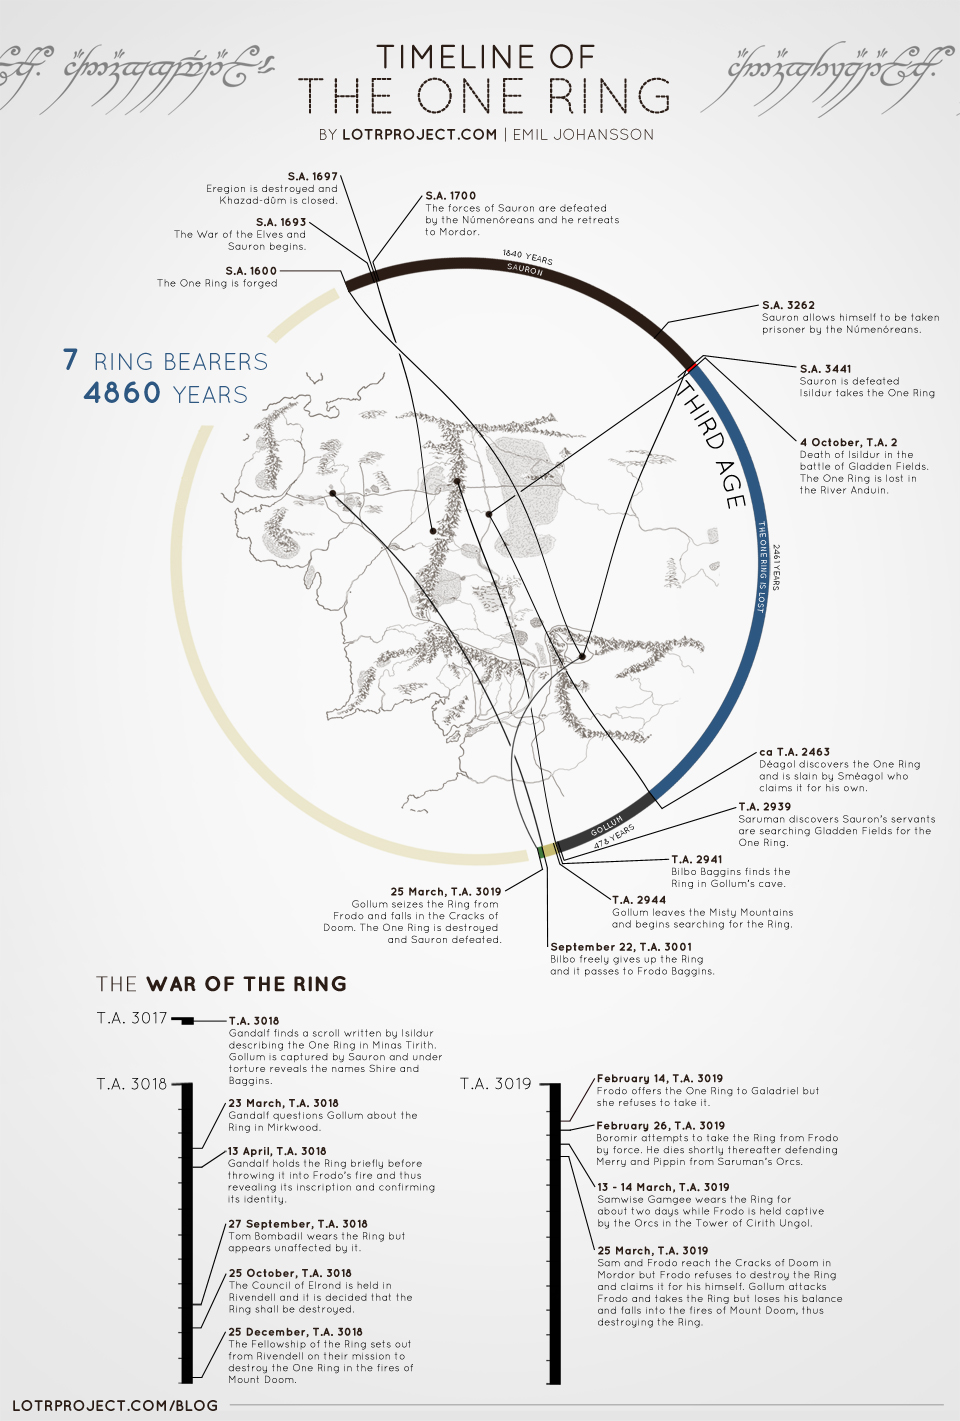 Visual Timeline of The One Ring from Lord of the Rings